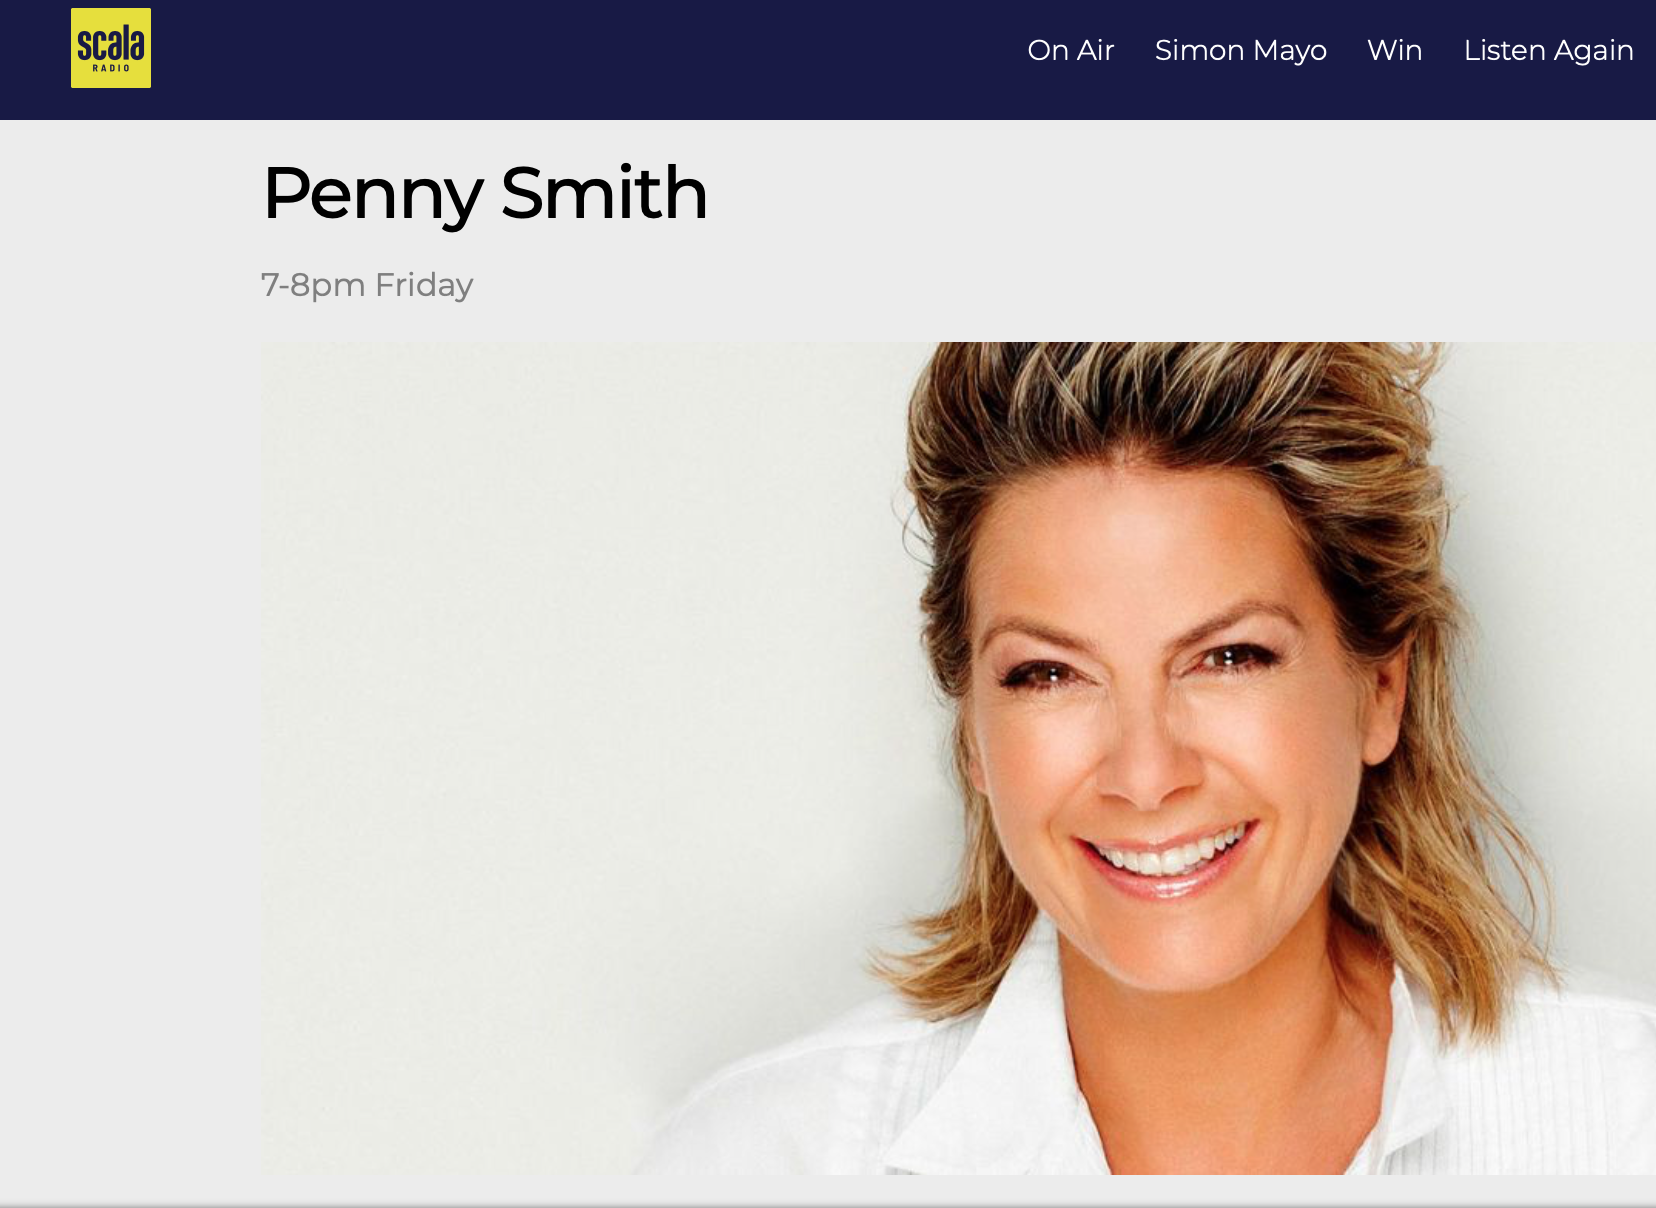 Colin a guest tonight on Scala Radio's 'Highly Rated' Show with Penny Smith